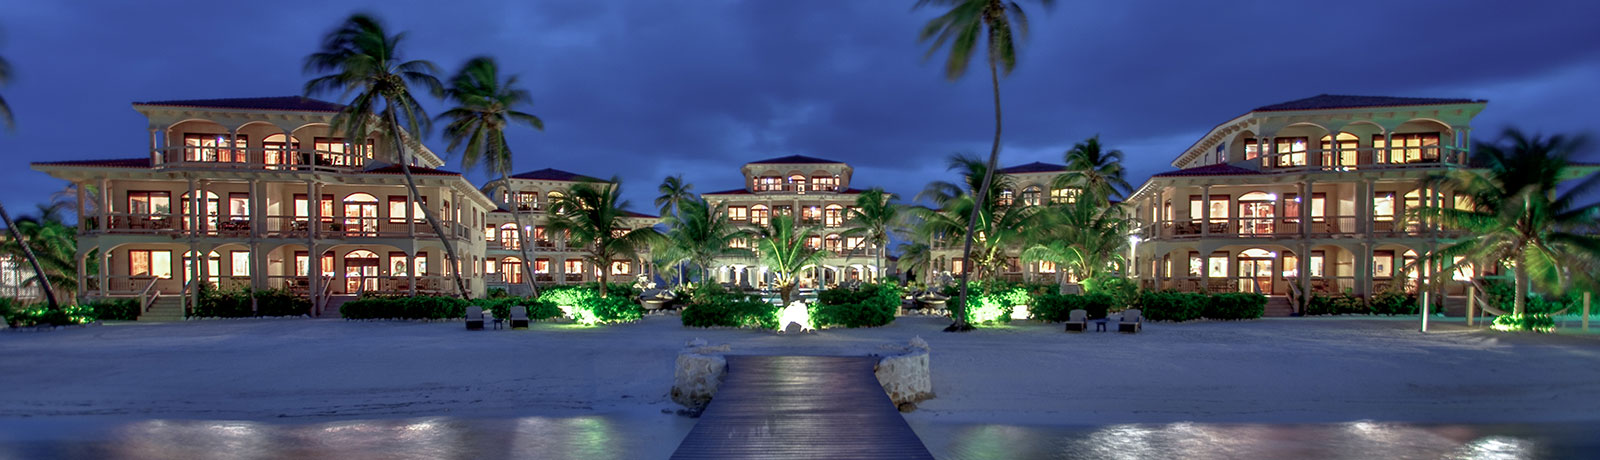 Coco Beach Resort, Ambergris Caye, Belize